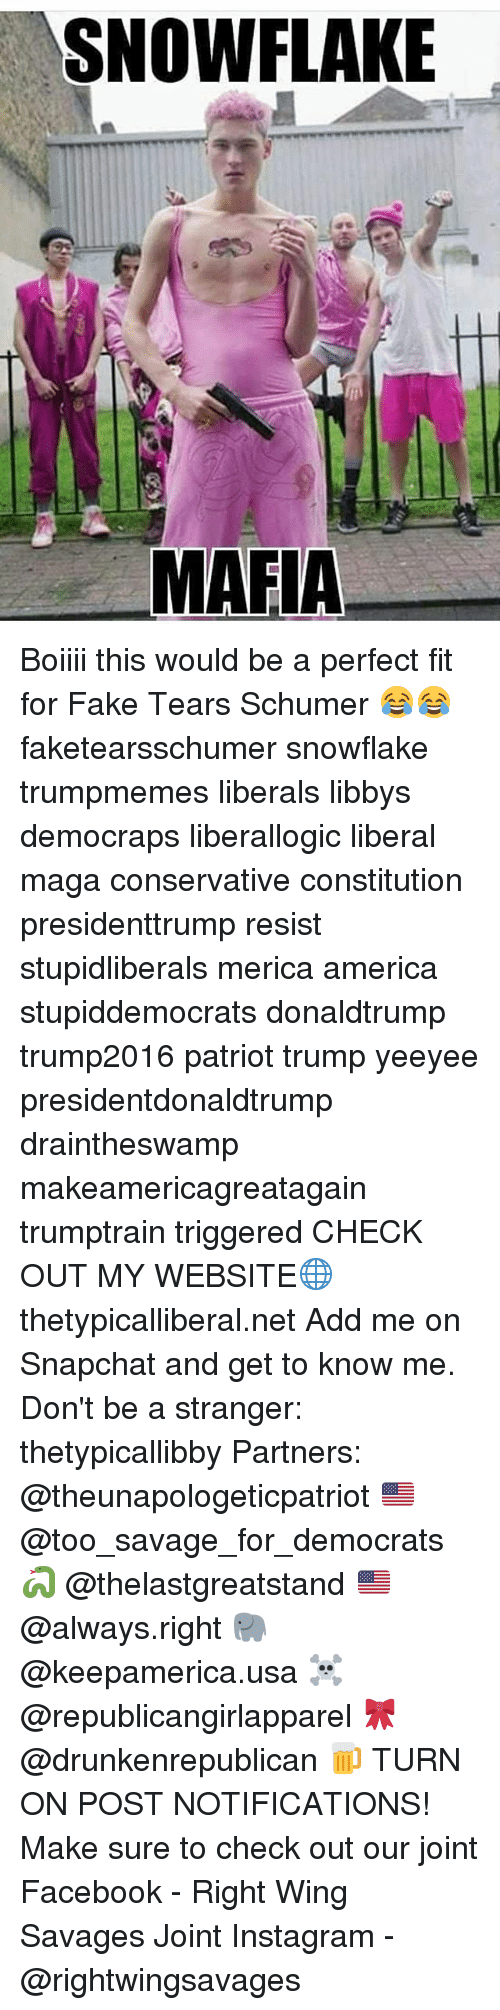 America, Facebook, and Fake: SNOWFLAKE  MAFIA Boiiii this would be a perfect fit for Fake Tears Schumer 😂😂 faketearsschumer snowflake trumpmemes liberals libbys democraps liberallogic liberal maga conservative constitution presidenttrump resist stupidliberals merica america stupiddemocrats donaldtrump trump2016 patriot trump yeeyee presidentdonaldtrump draintheswamp makeamericagreatagain trumptrain triggered CHECK OUT MY WEBSITE🌐 thetypicalliberal.net Add me on Snapchat and get to know me. Don't be a stranger: thetypicallibby Partners: @theunapologeticpatriot 🇺🇸 @too_savage_for_democrats 🐍 @thelastgreatstand 🇺🇸 @always.right 🐘 @keepamerica.usa ☠️ @republicangirlapparel 🎀 @drunkenrepublican 🍺 TURN ON POST NOTIFICATIONS! Make sure to check out our joint Facebook - Right Wing Savages Joint Instagram - @rightwingsavages